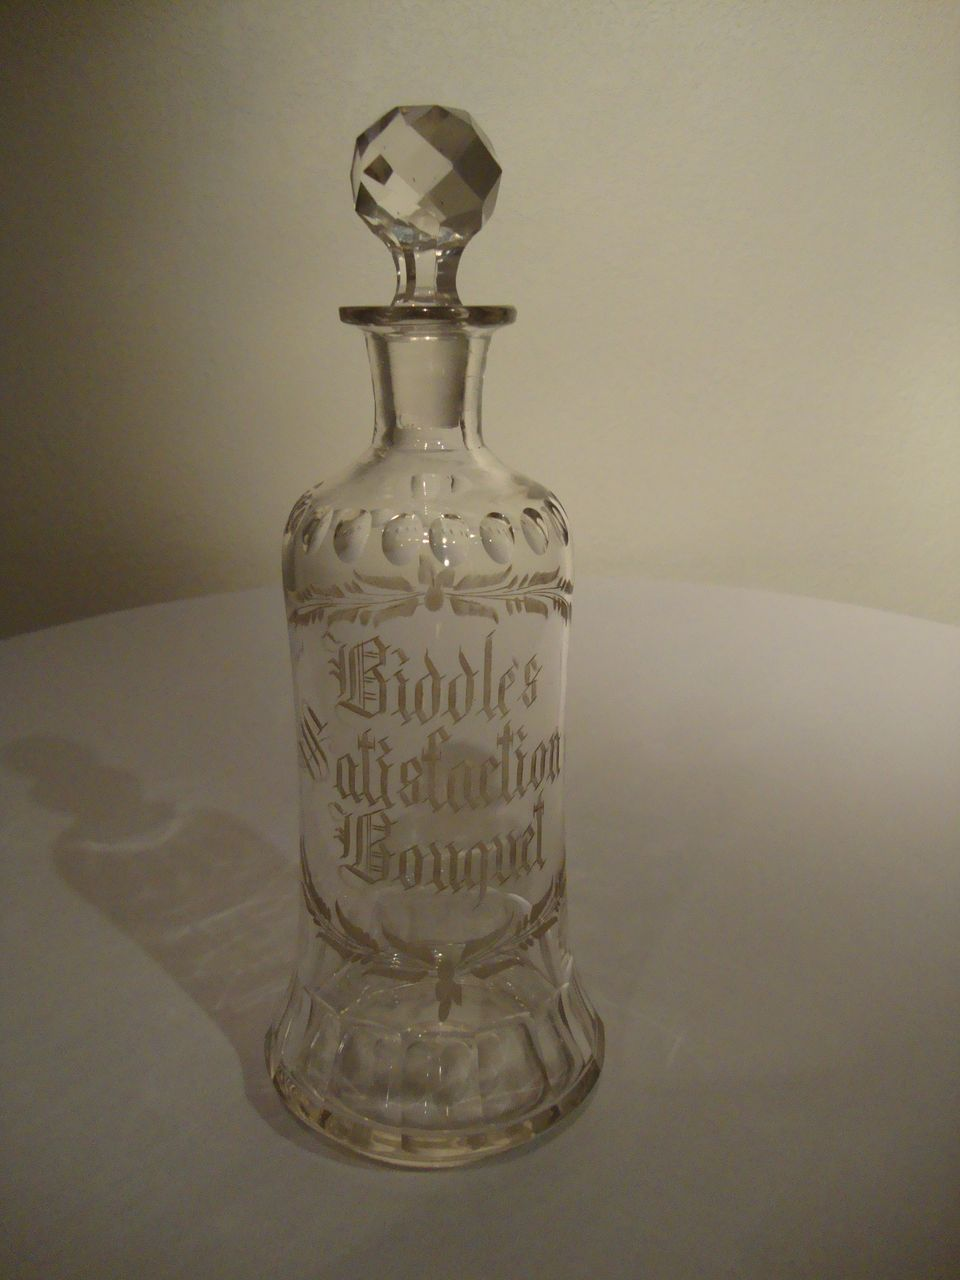 Biddle's Satisfaction Bouquet – Perfume Bottle / Decanter